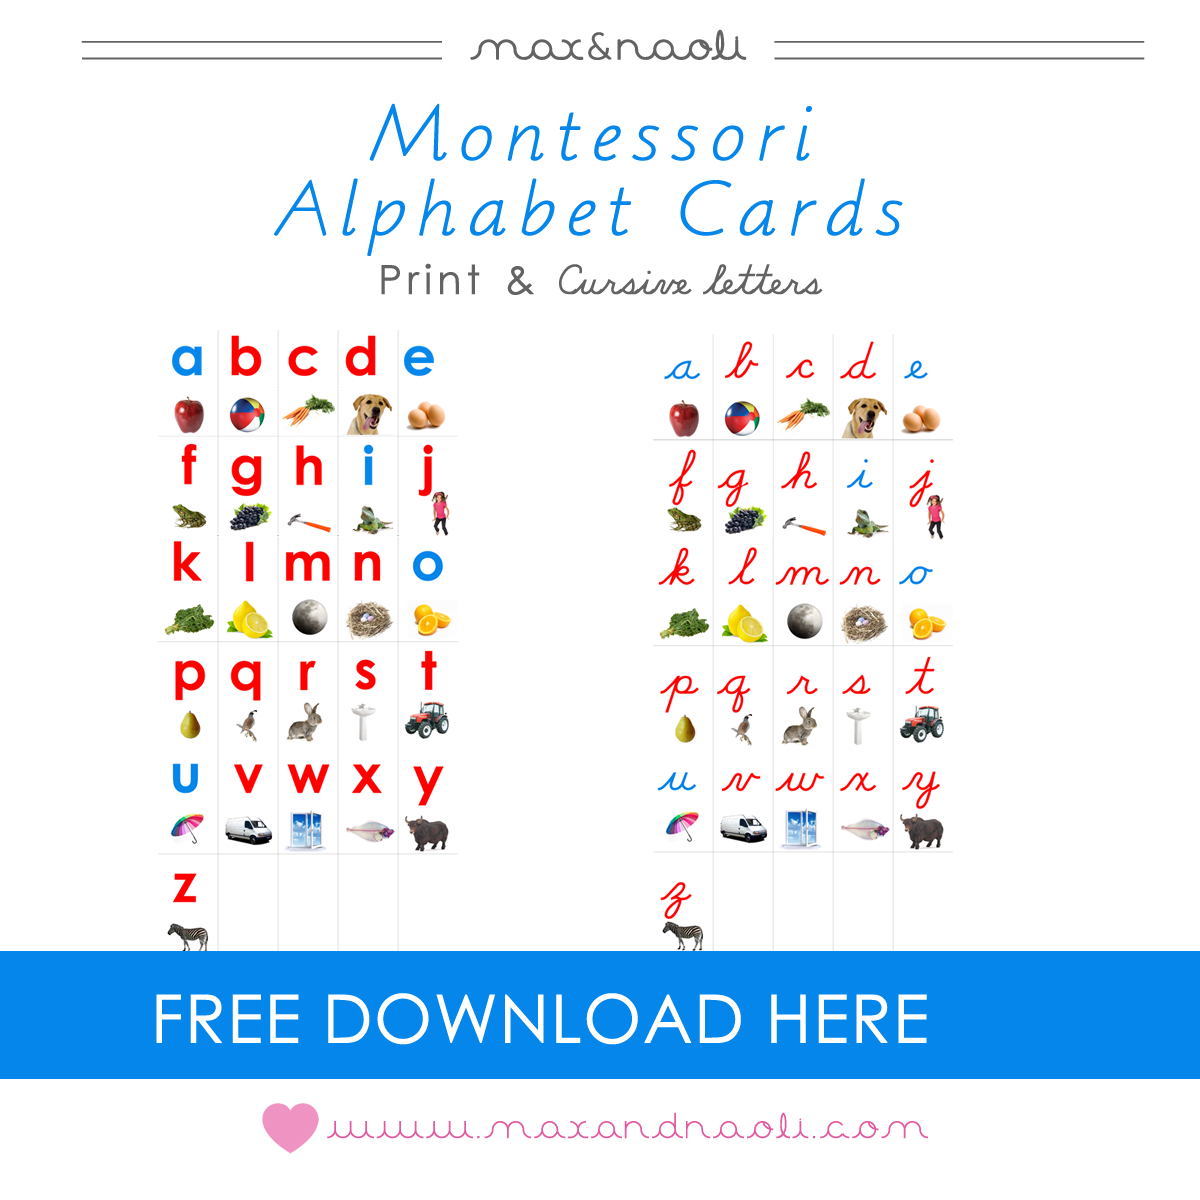 free montessori alphabet cards with print and cursive letters